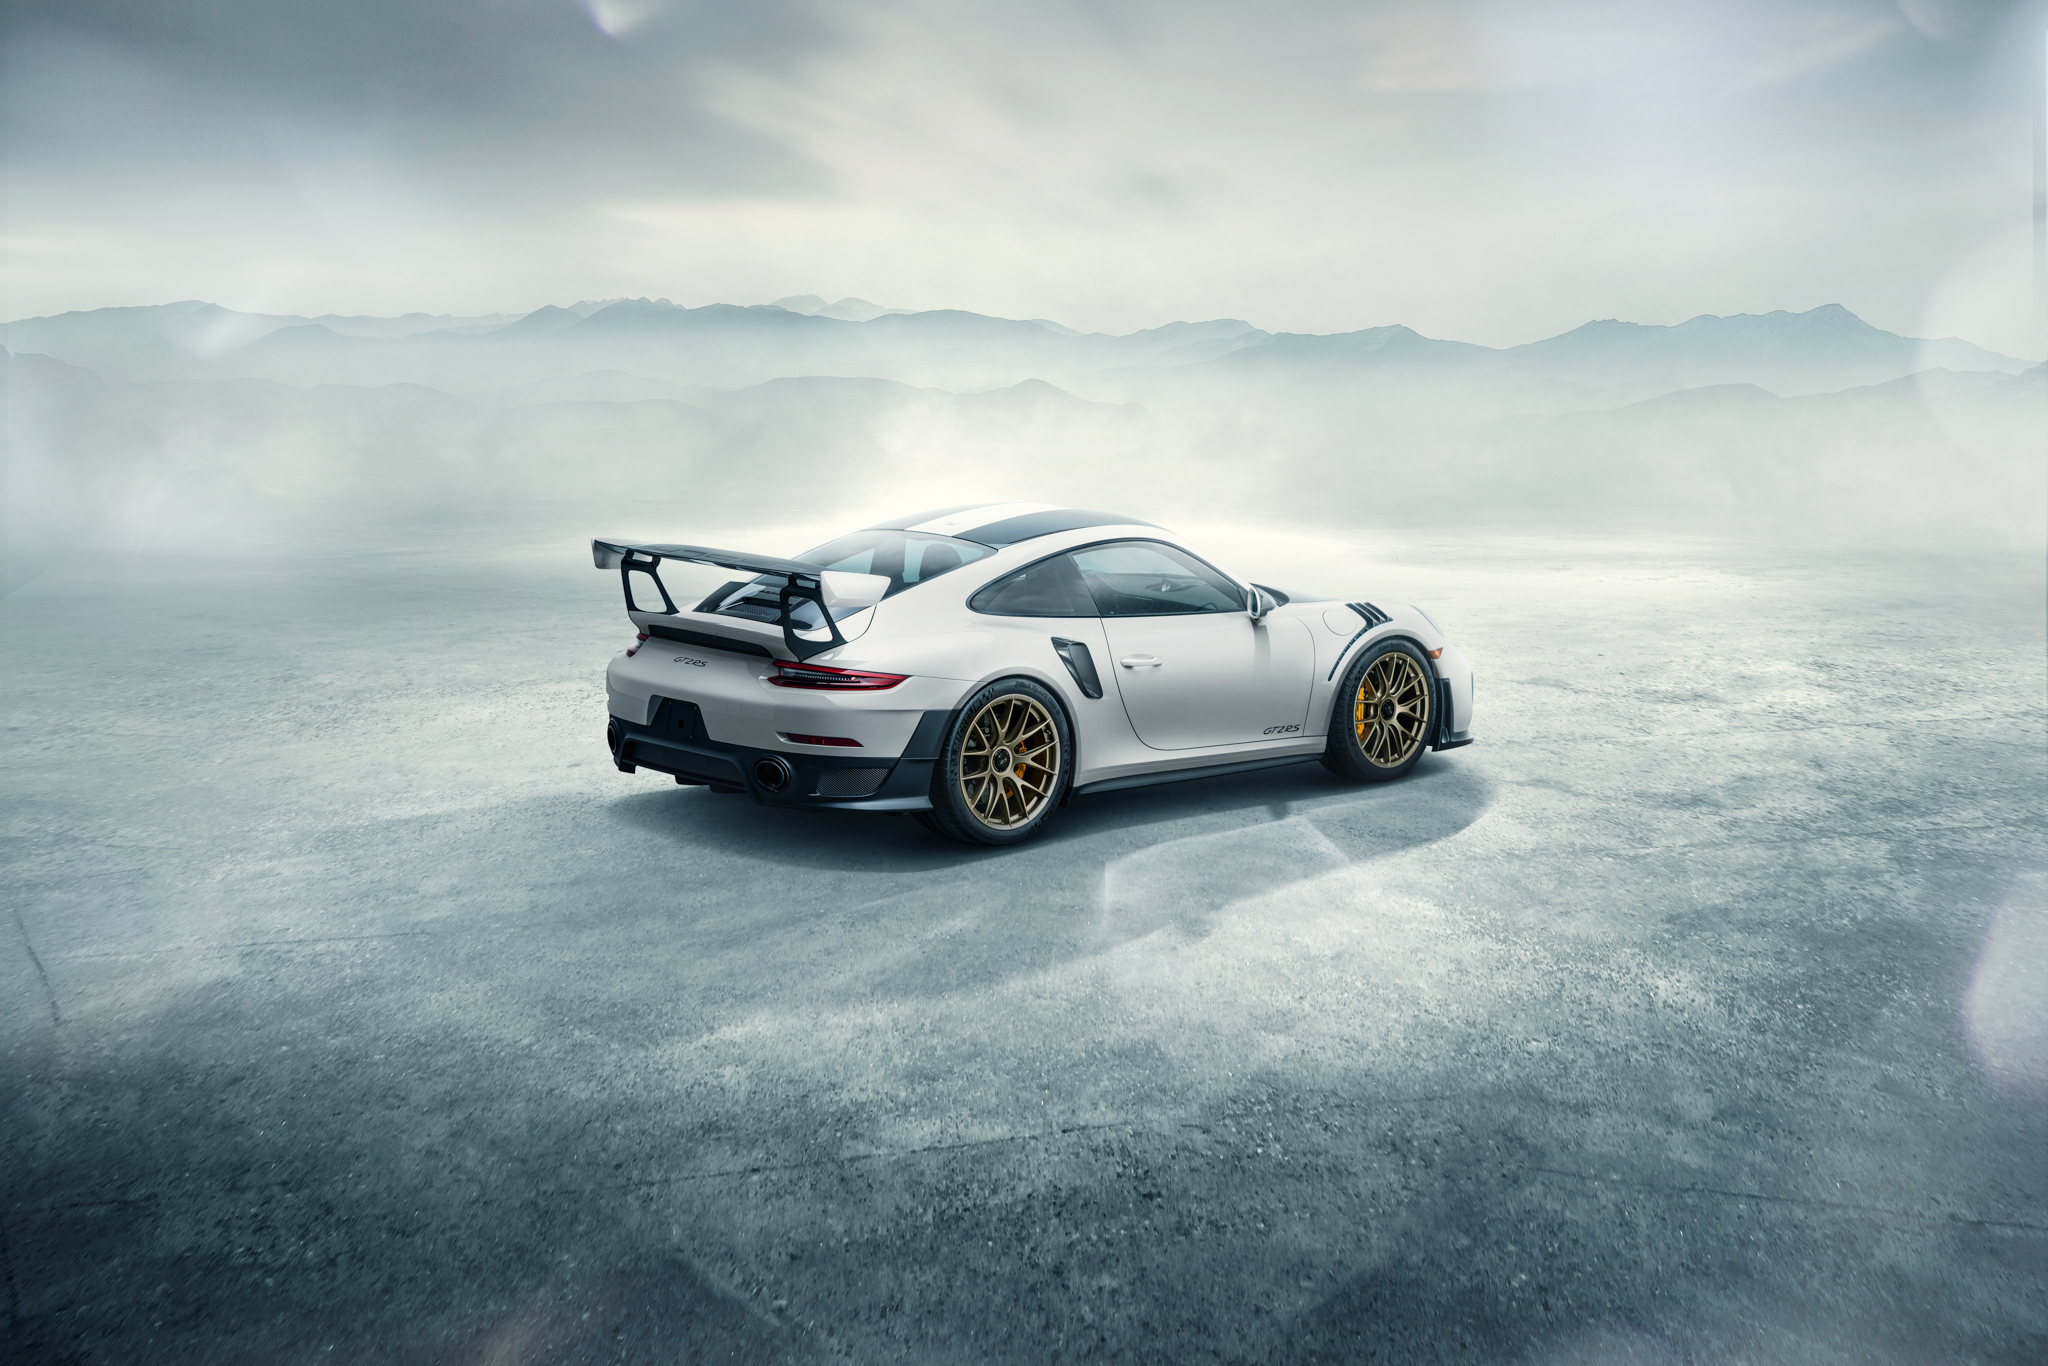 Commercial Automotive Photography | Porsche 991 GT2 RS